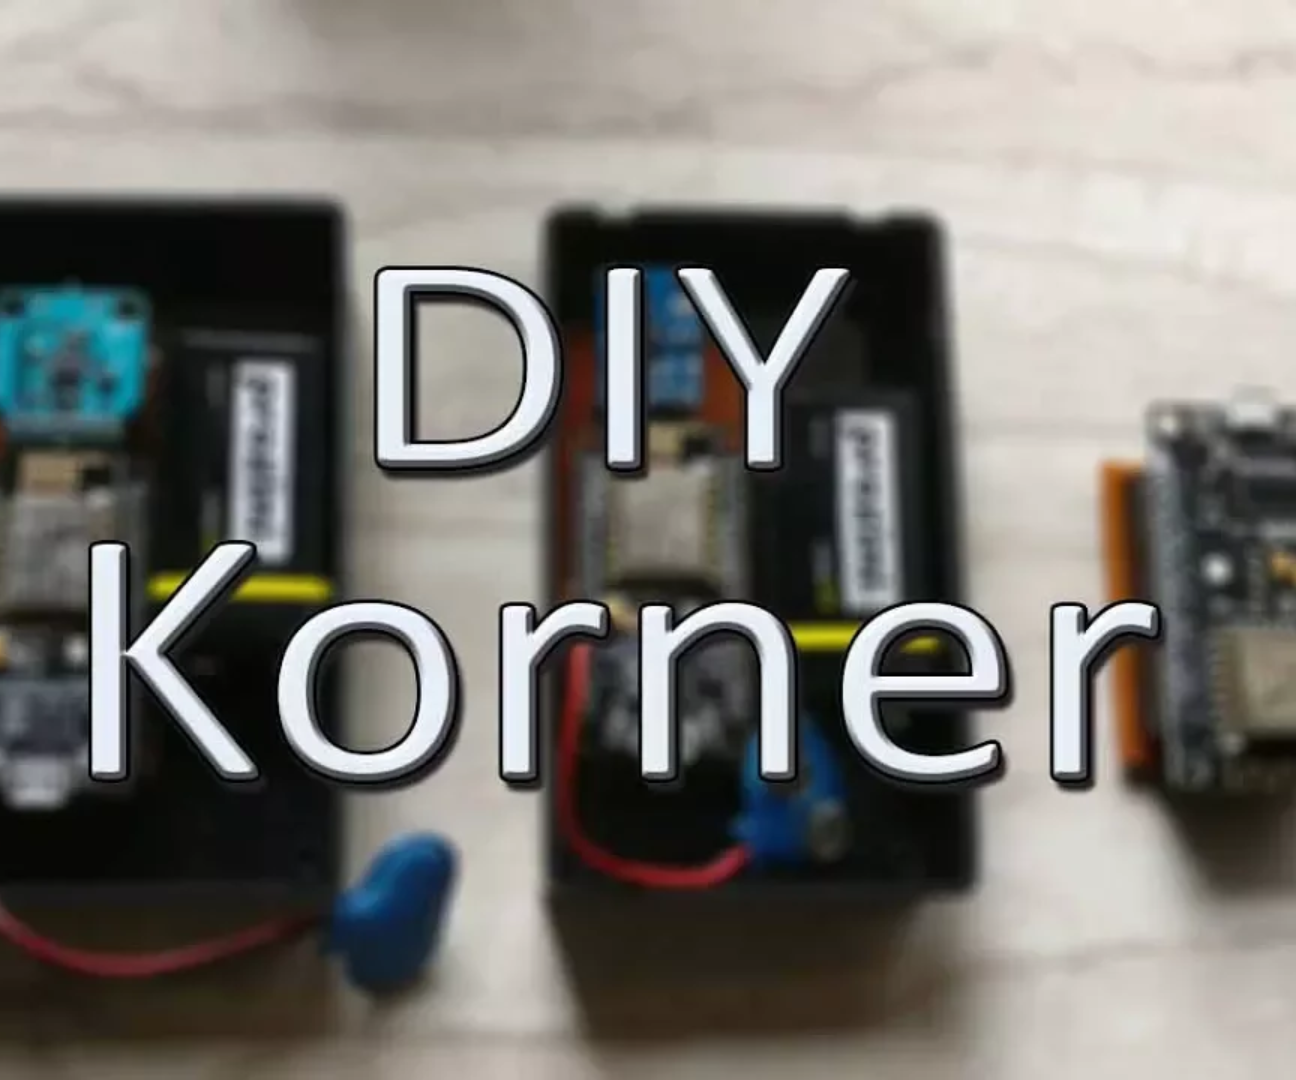 DIY Korner | Home Security Based Product